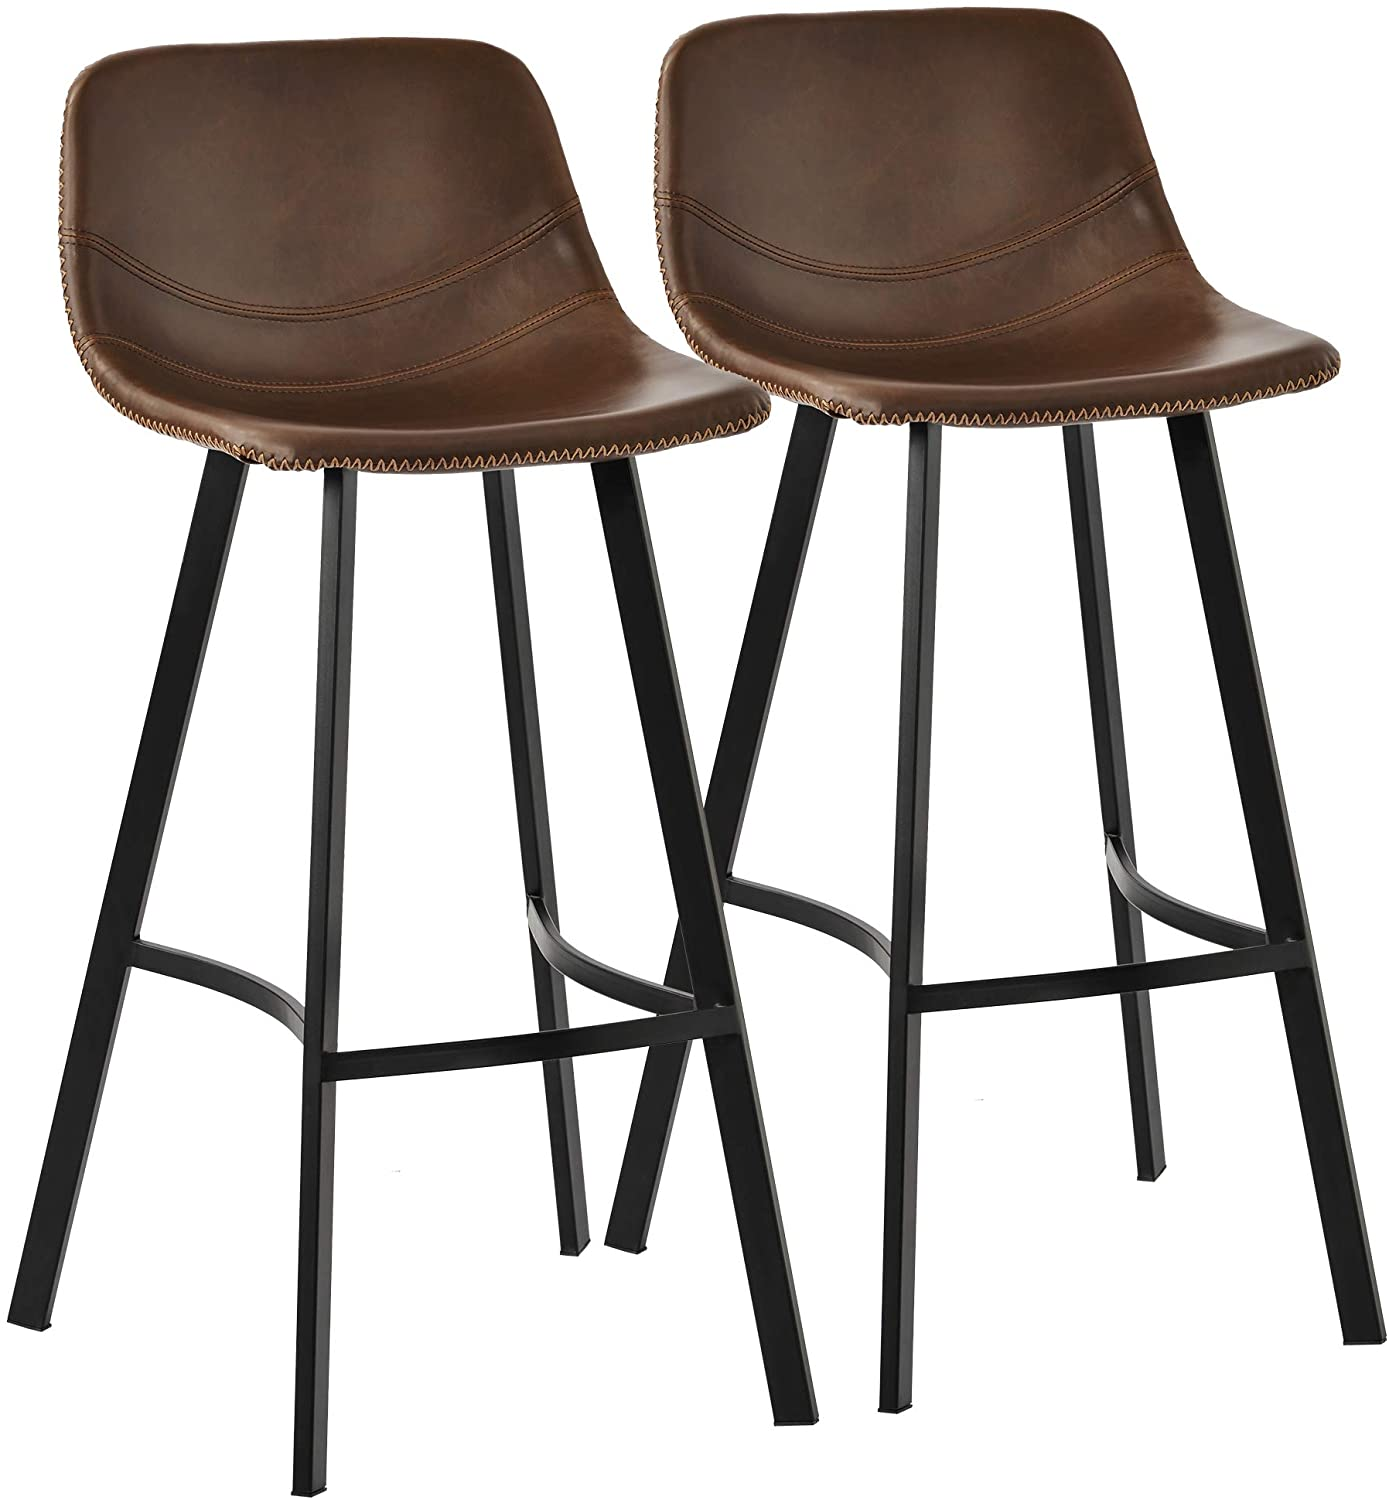 Knocbel Vintage Leather Height Bar Stool, Set of 2, Kitchen Dining Room Stools Bar Pub Chairs with Low Back, Footrest & Metal Legs, 267 Lbs Weight Capacity (Light Brown)